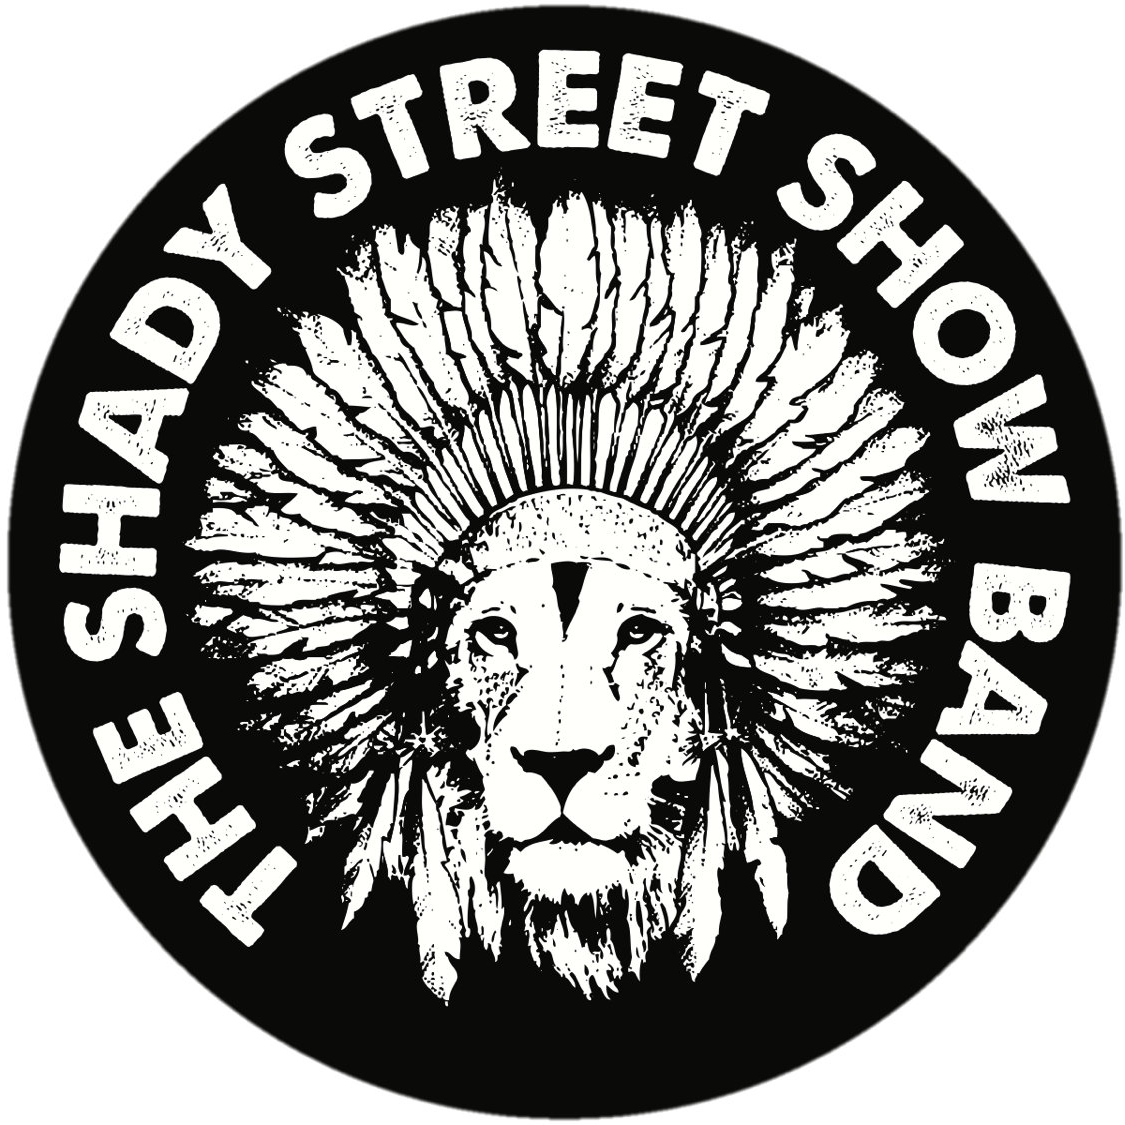 11/24 The Shady Street show Band